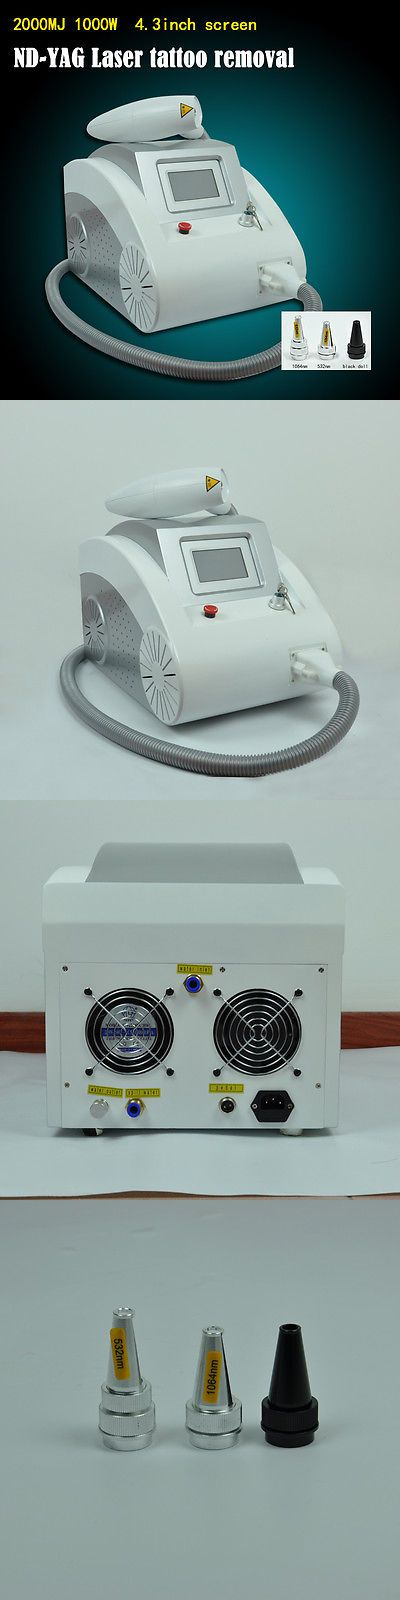 Tattoo Removal Machines: Q Switch Nd Yag Laser Tattoo Removal System Machine BUY IT NOW ONLY: $1350.0